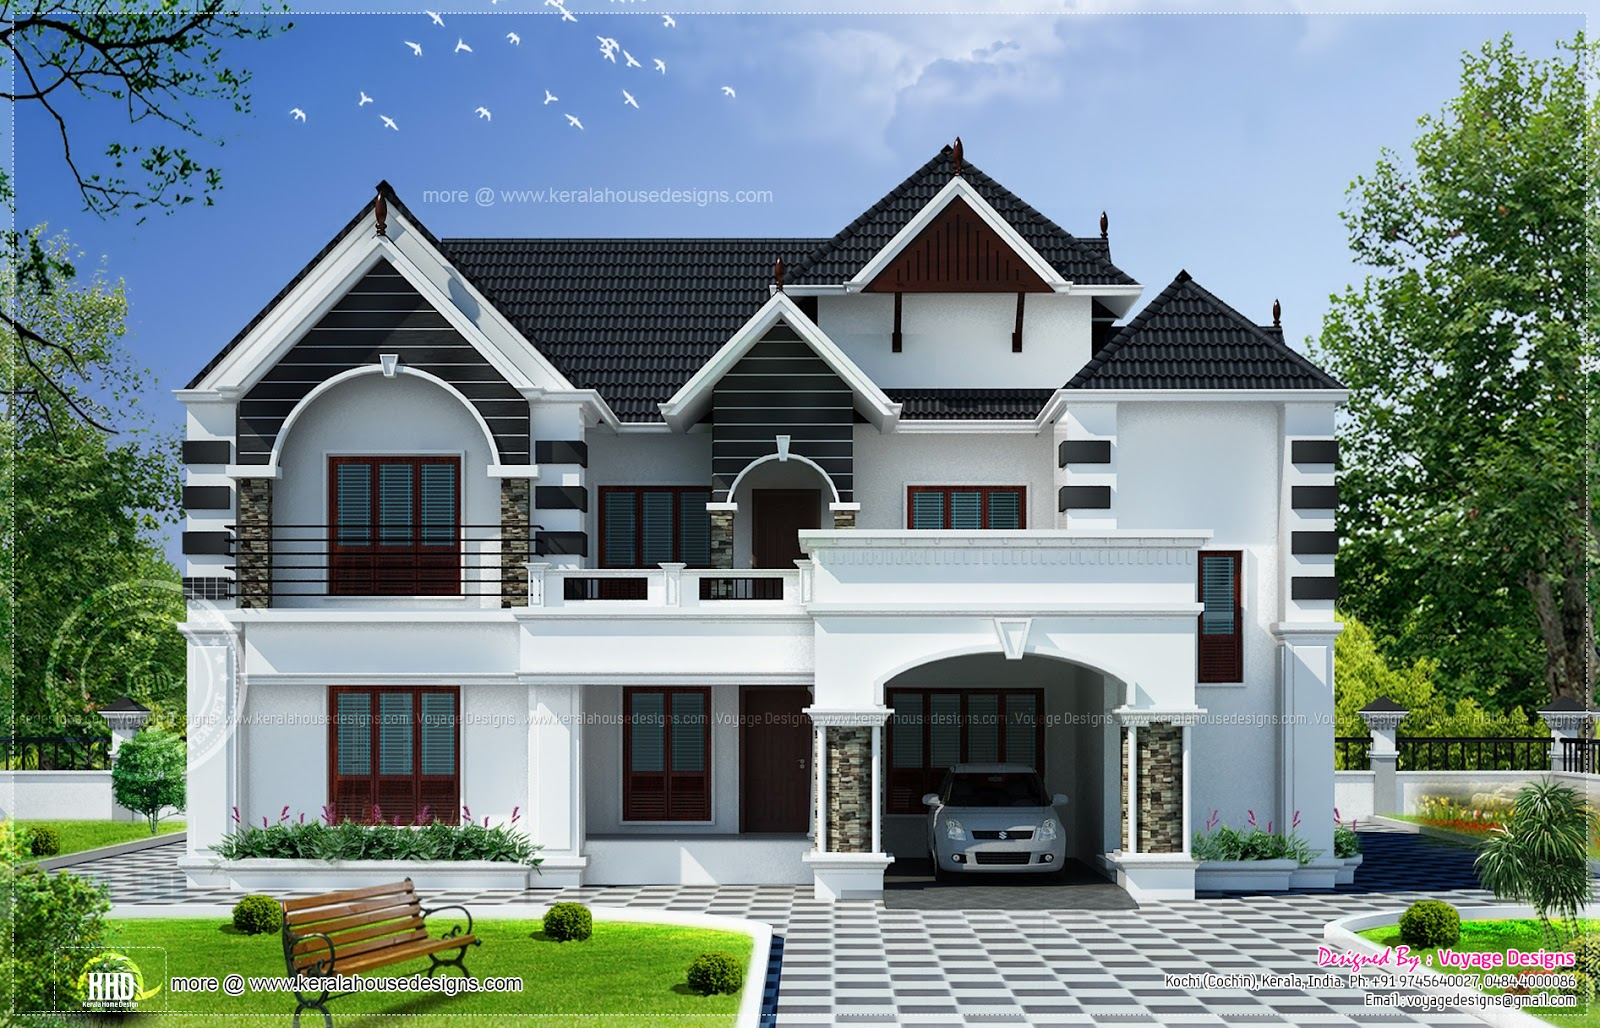 4 bedroom colonial style house kerala home design and Colonial style homes floor plans